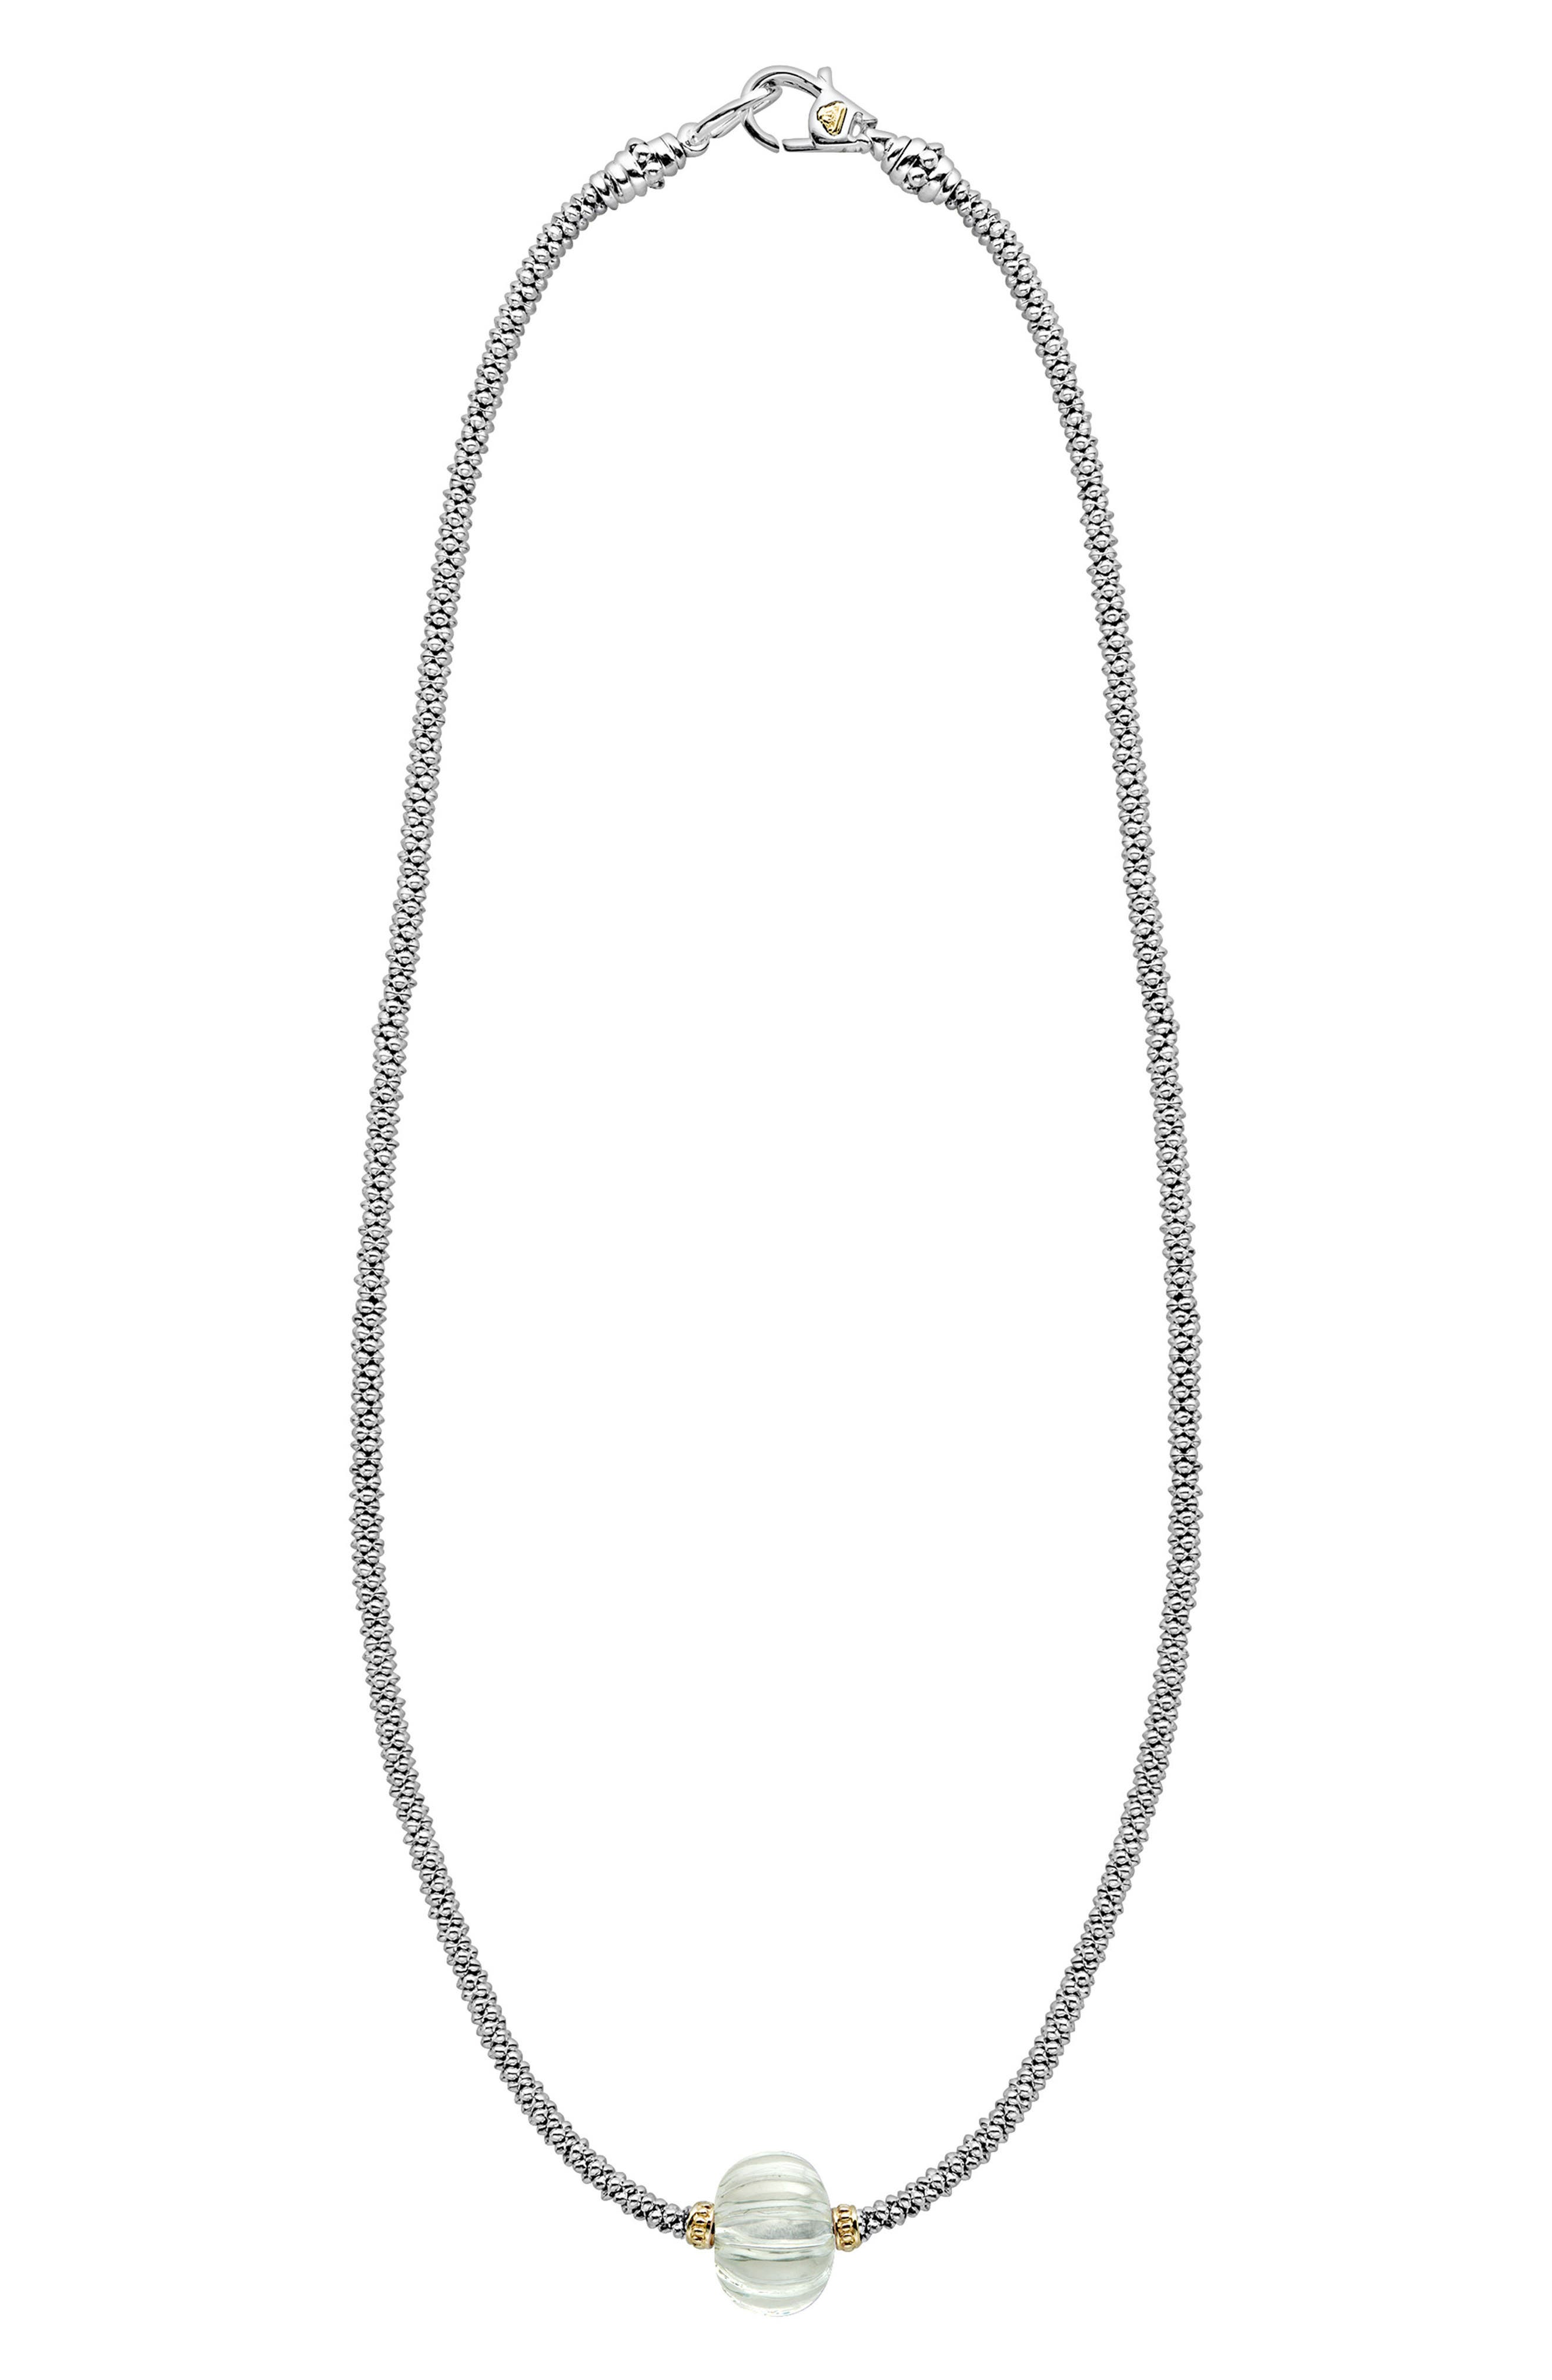 Caviar Forever Melon Bead Rope Necklace,                             Main thumbnail 1, color,                             Silver/ Green Amethyst